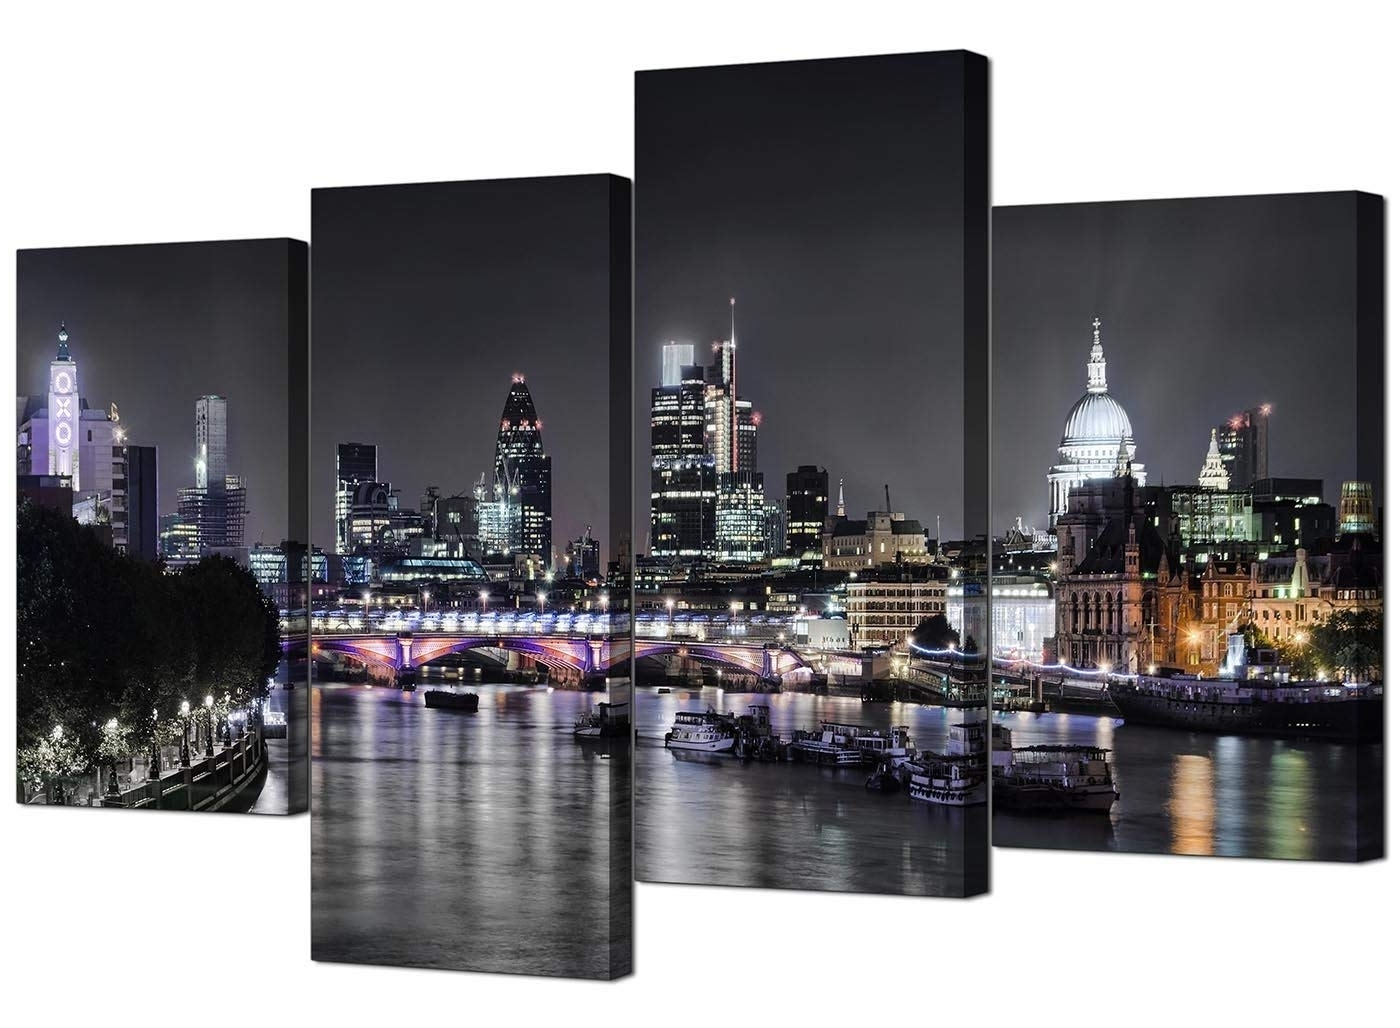 Trendy Canvas Wall Art Of London Skyline For Your Living Room – 4 Panel With Regard To London Wall Art (View 13 of 15)